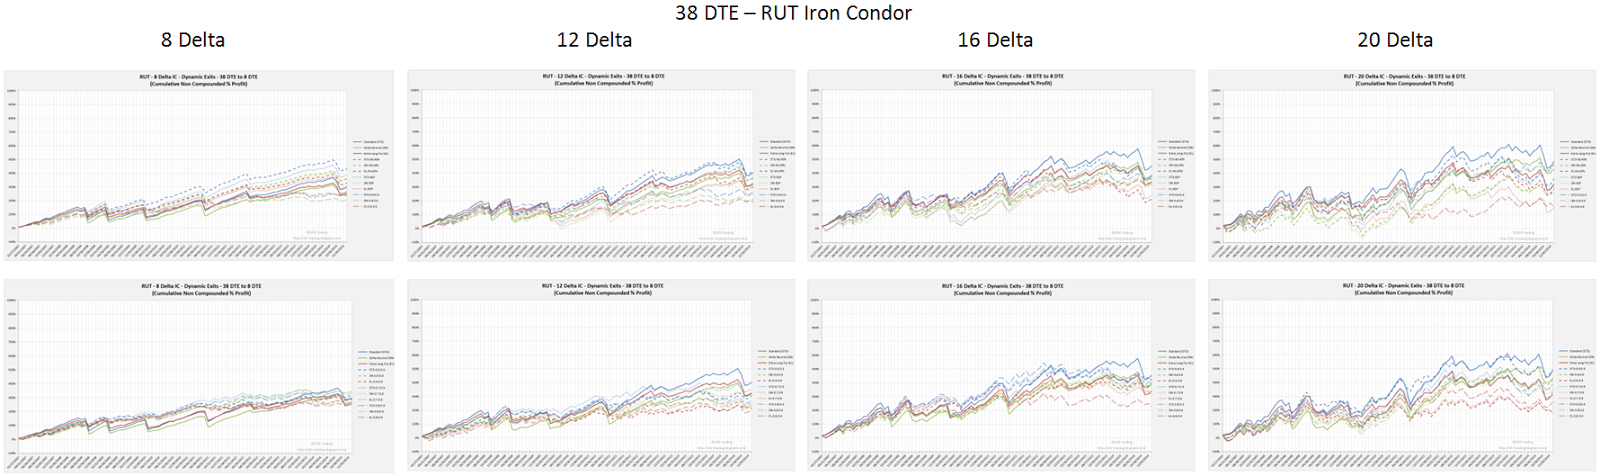 Iron Condor Dynamic Exit Equity Curves RUT 38 DTE 8, 12, 16, and 20 Delta